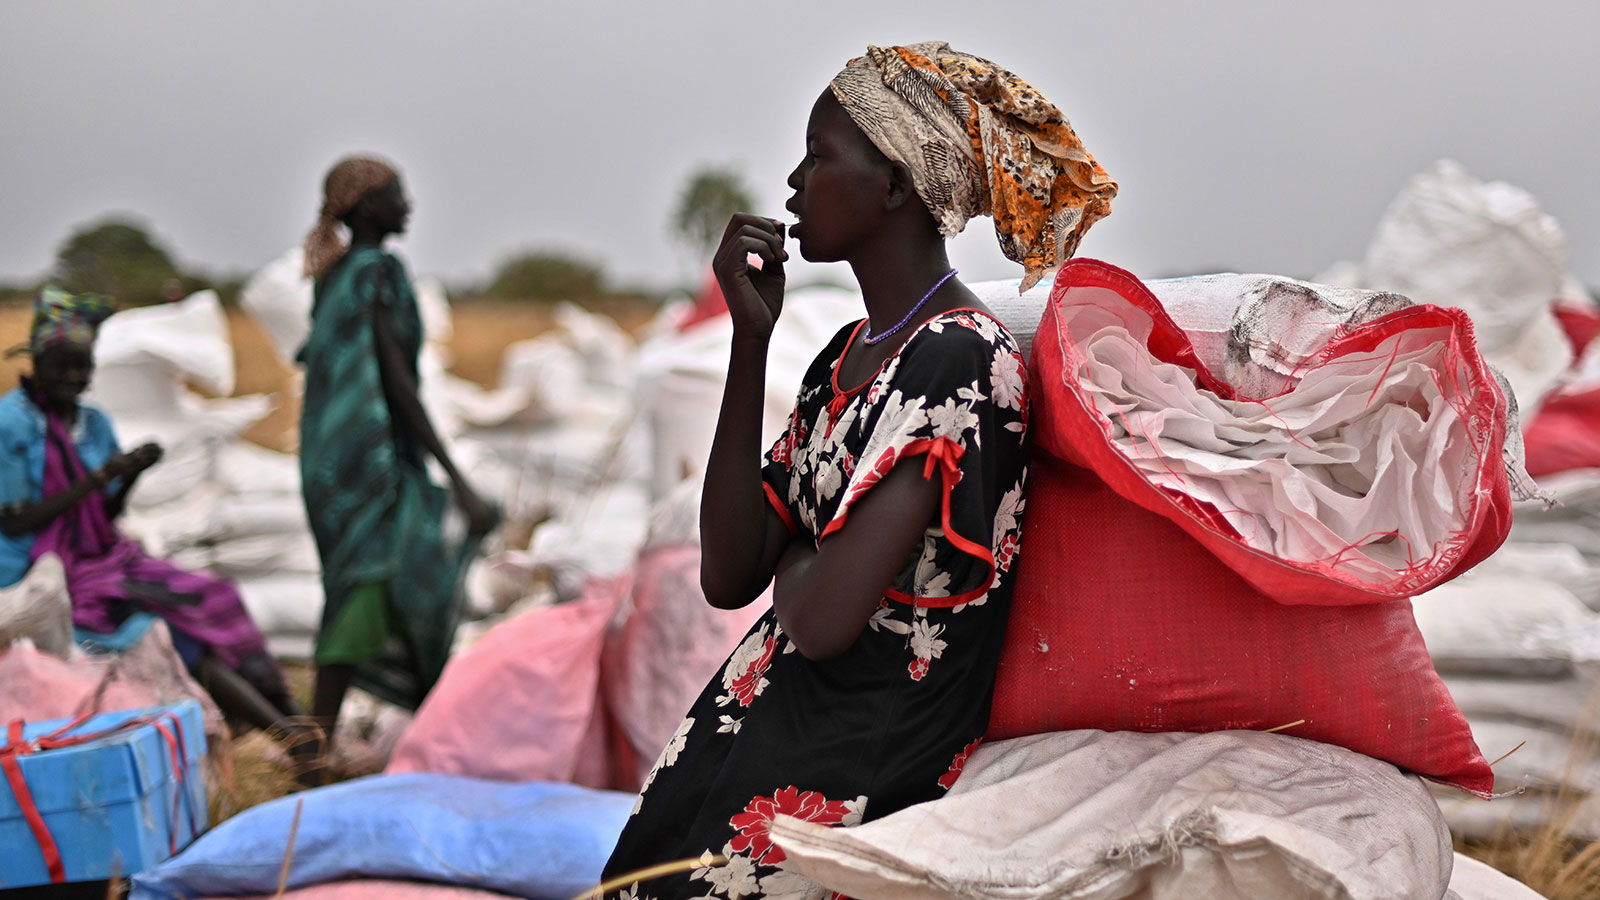 A villager who had volunteered to fetch bags containing food rations from the site of an air drop takes a break at a village in Ayod county in South Sudan on February 6.